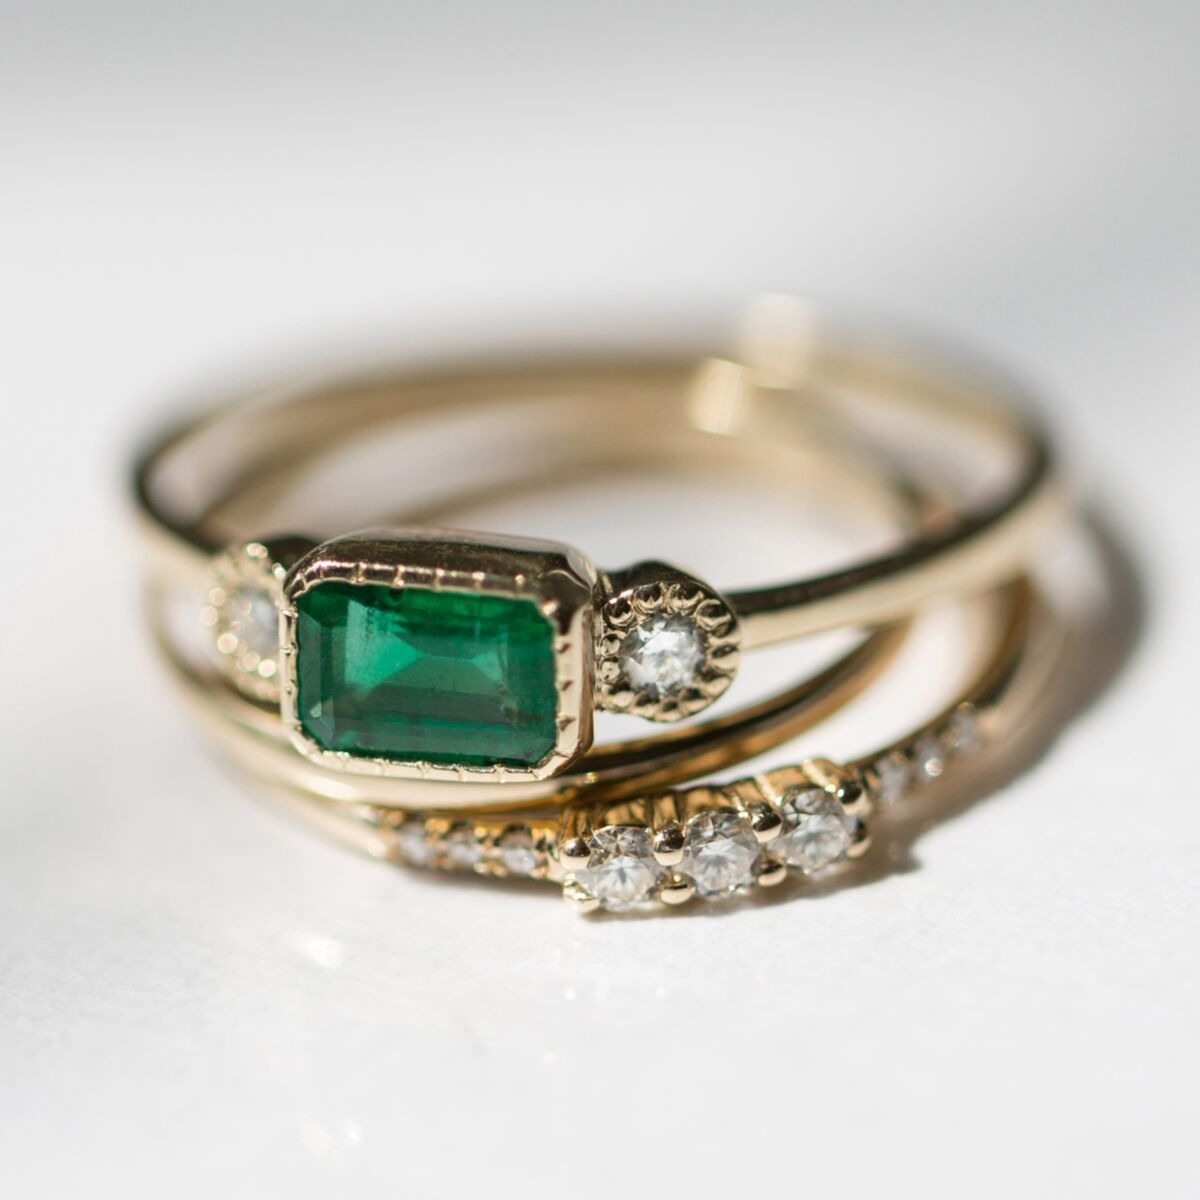 stone trio emerald band with a vintage look